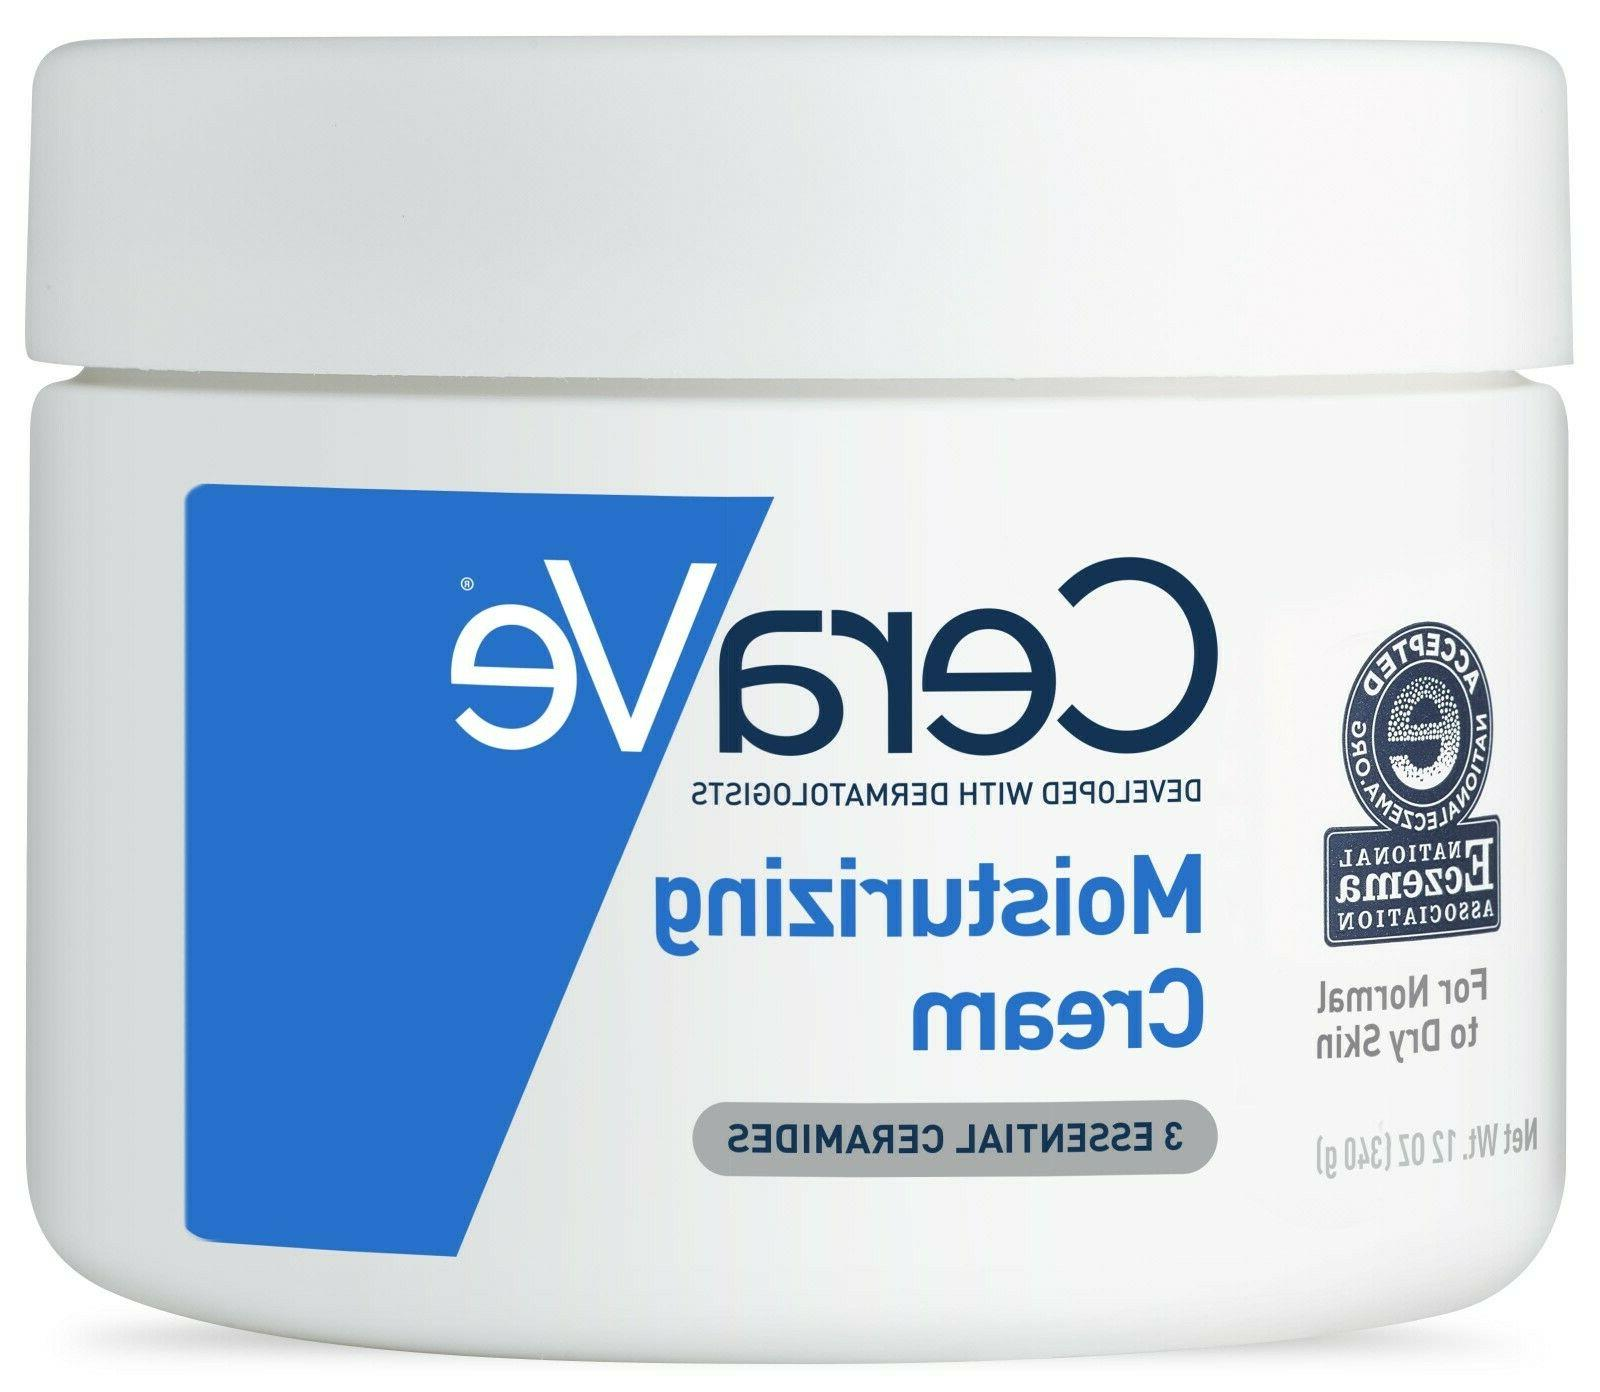 moisturizing cream 19 oz daily face